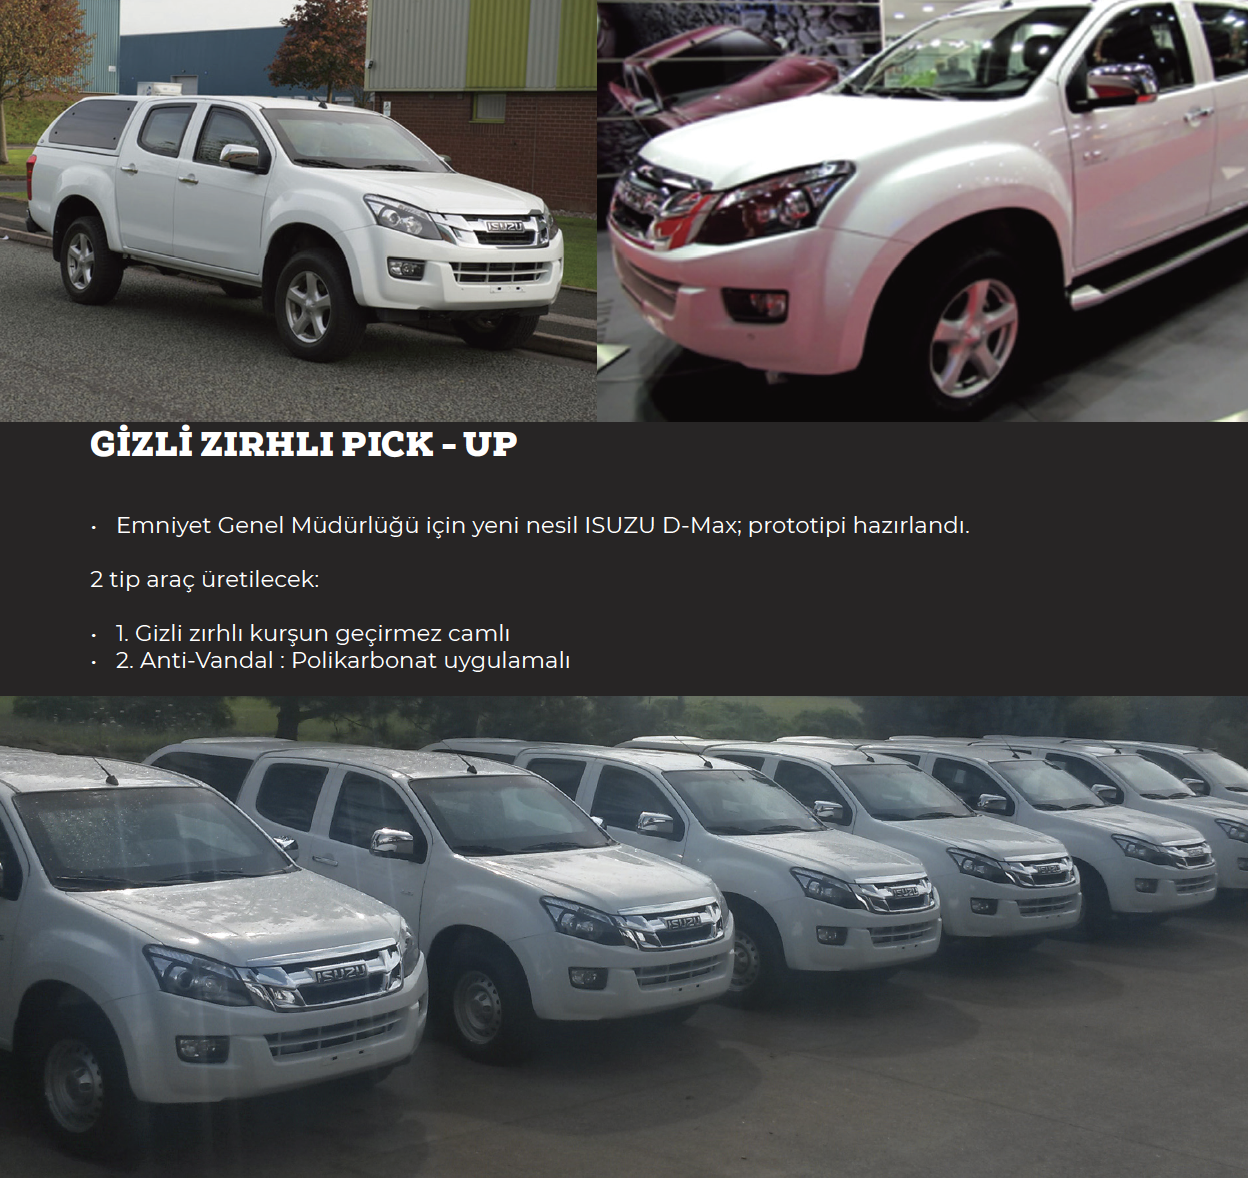 Gizli Zırhlı Pick - Up